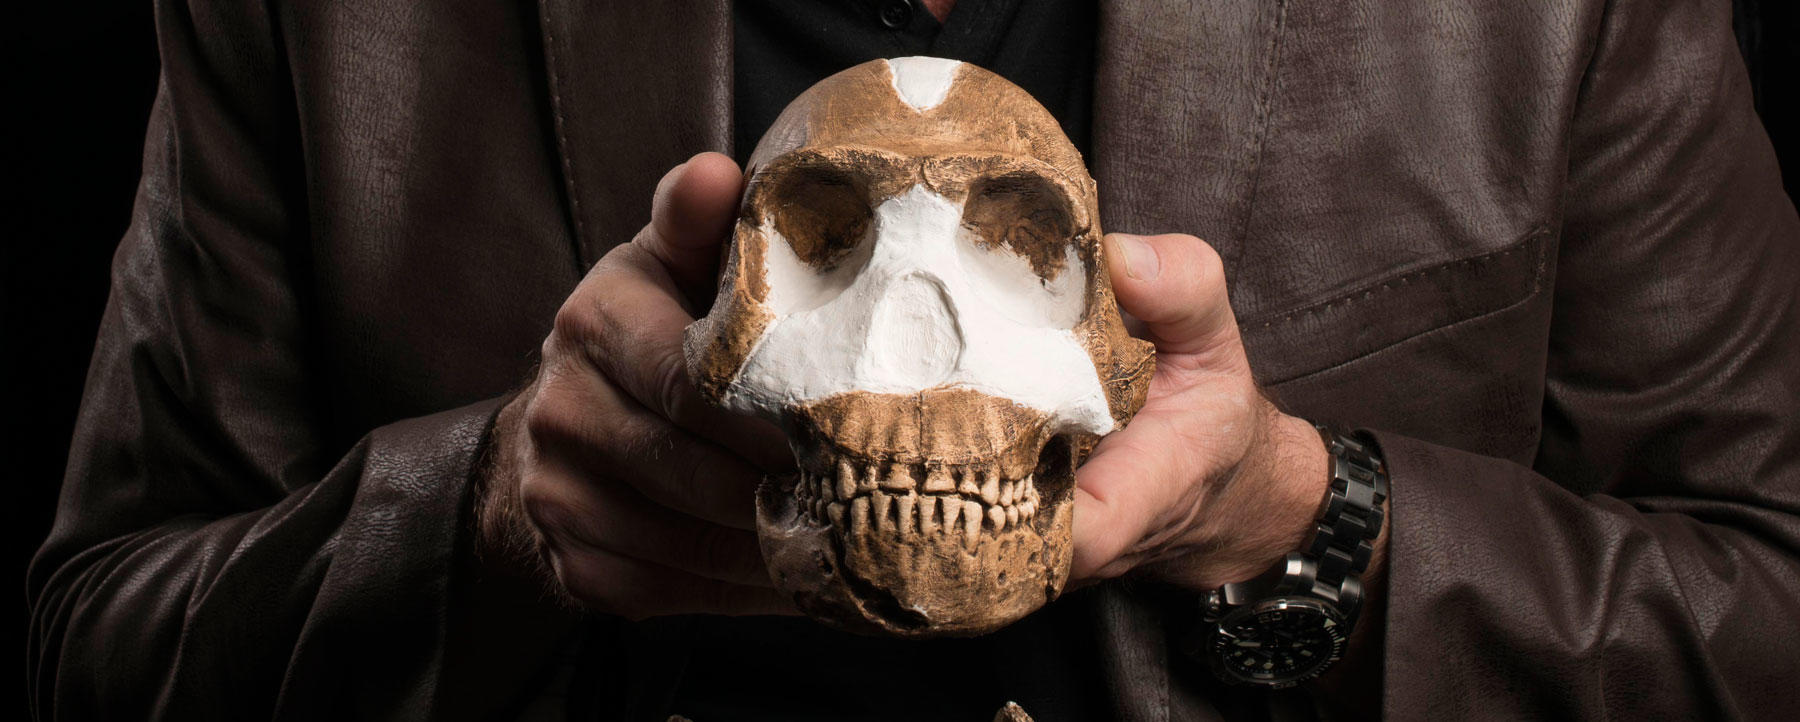 Lee Berger introduces Homo naledi